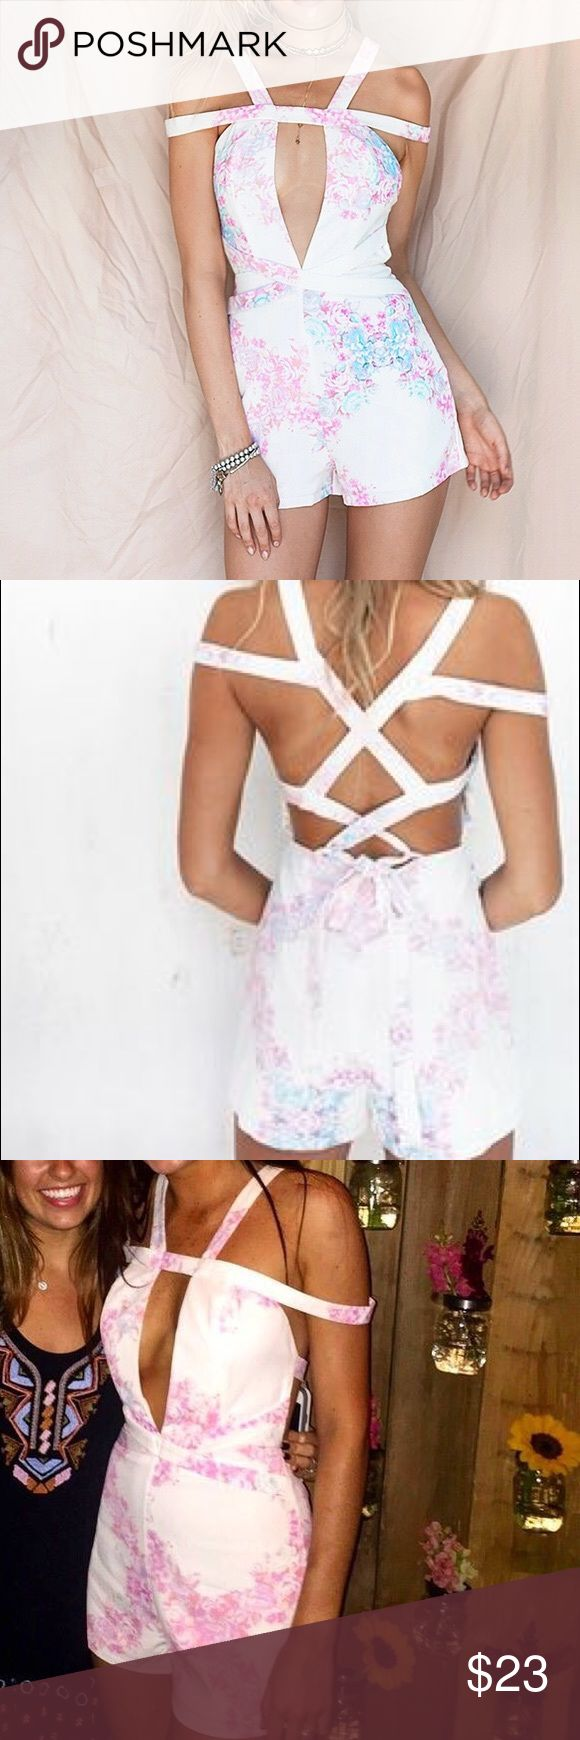 """Sabo Skirt Playsuit Sabo Skirt Ada Bloom Playsuit Super cute and unique playsuit! Only worn twice and in perfect condition! • White with light pink and a little light blue floral details • Strappy back • I am 5' 5"""" 120 lbs and it fit me perfectly Sabo Skirt Other"""